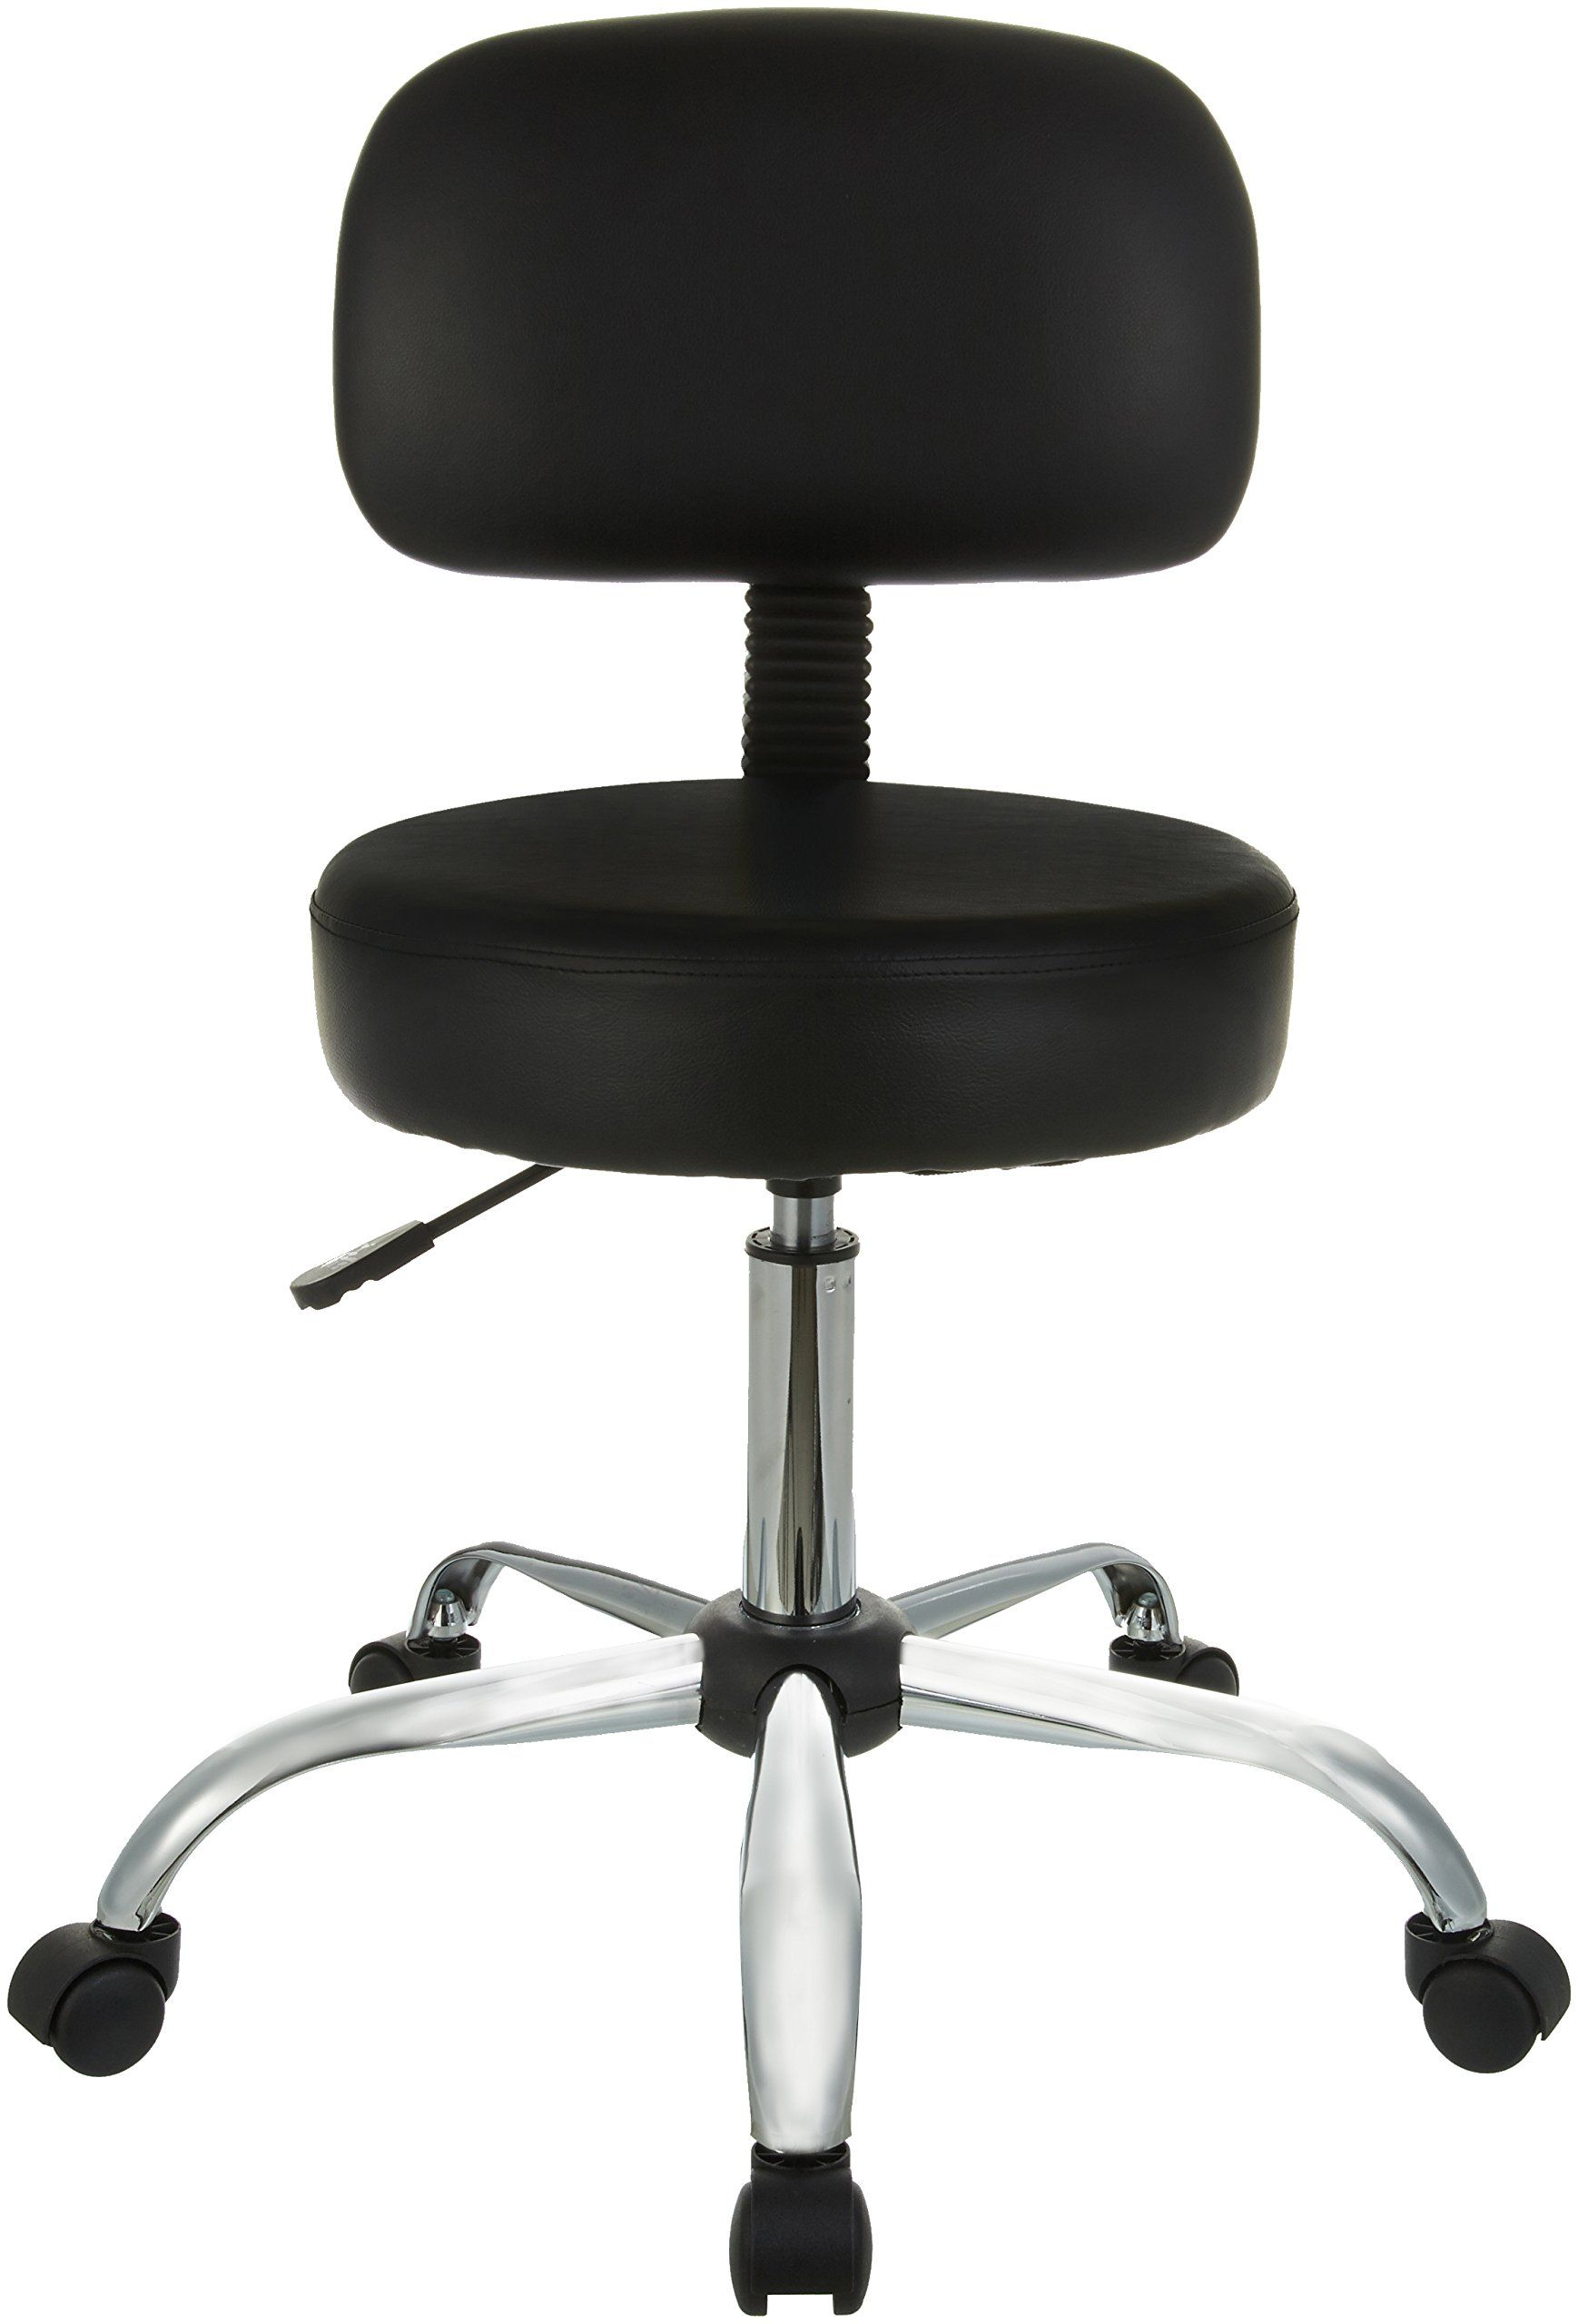 Amazonbasics Drafting Stool With Back Cushion Black Details Could Be Found By Clicking The Photo This I Stools With Backs Bar Stools With Backs Bar Stools